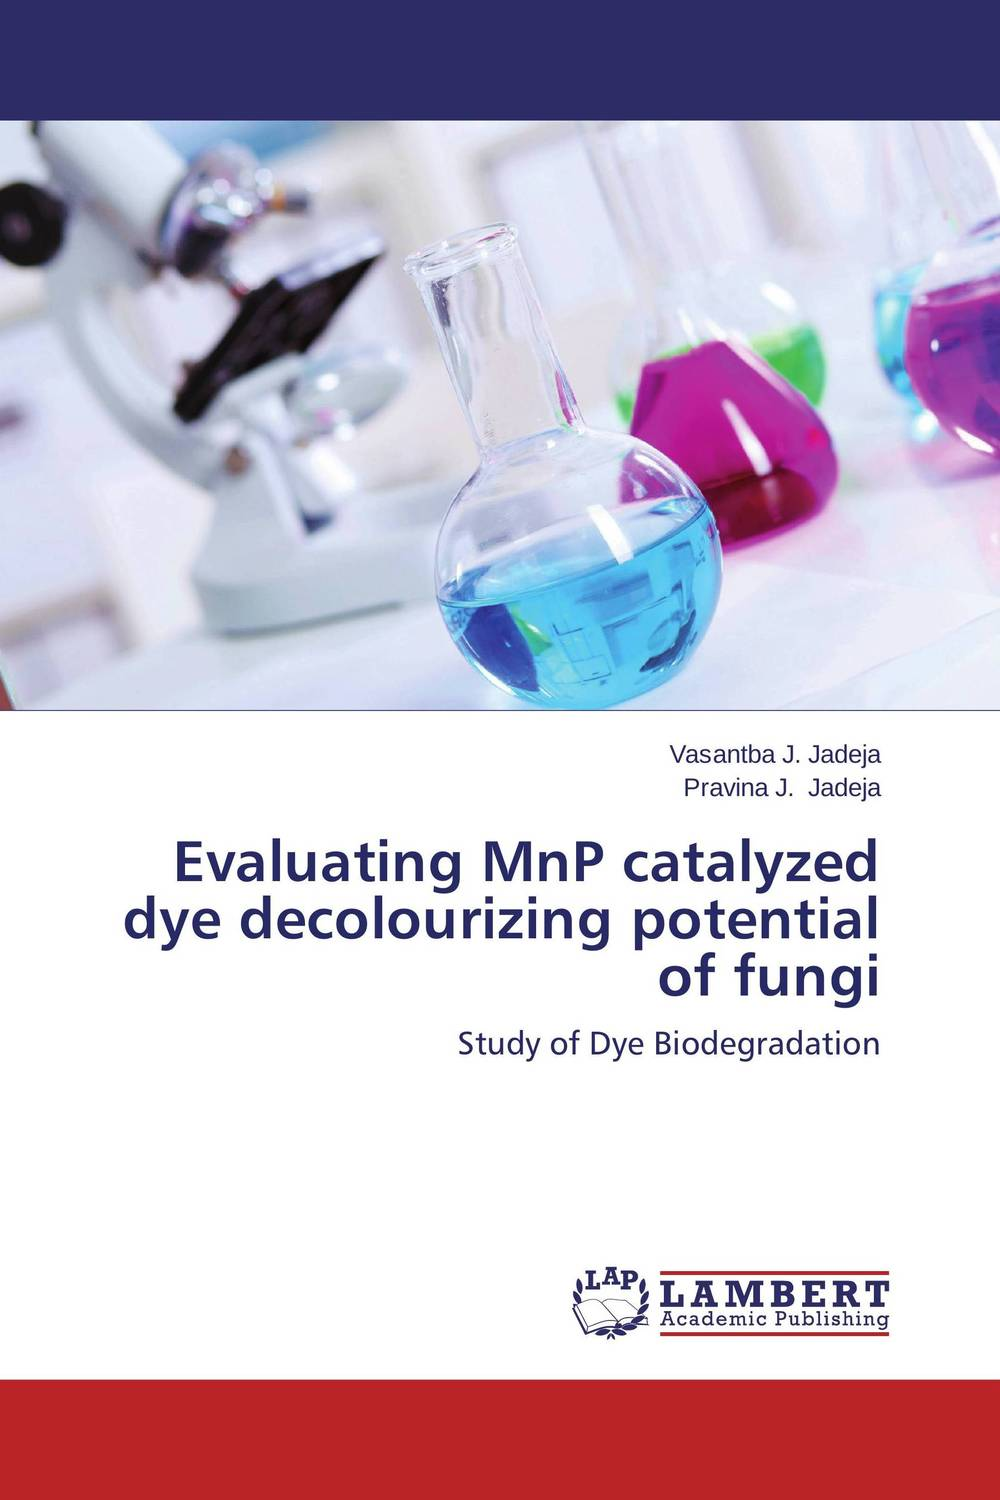 Evaluating MnP catalyzed dye decolourizing potential of fungi natural dyes for textiles